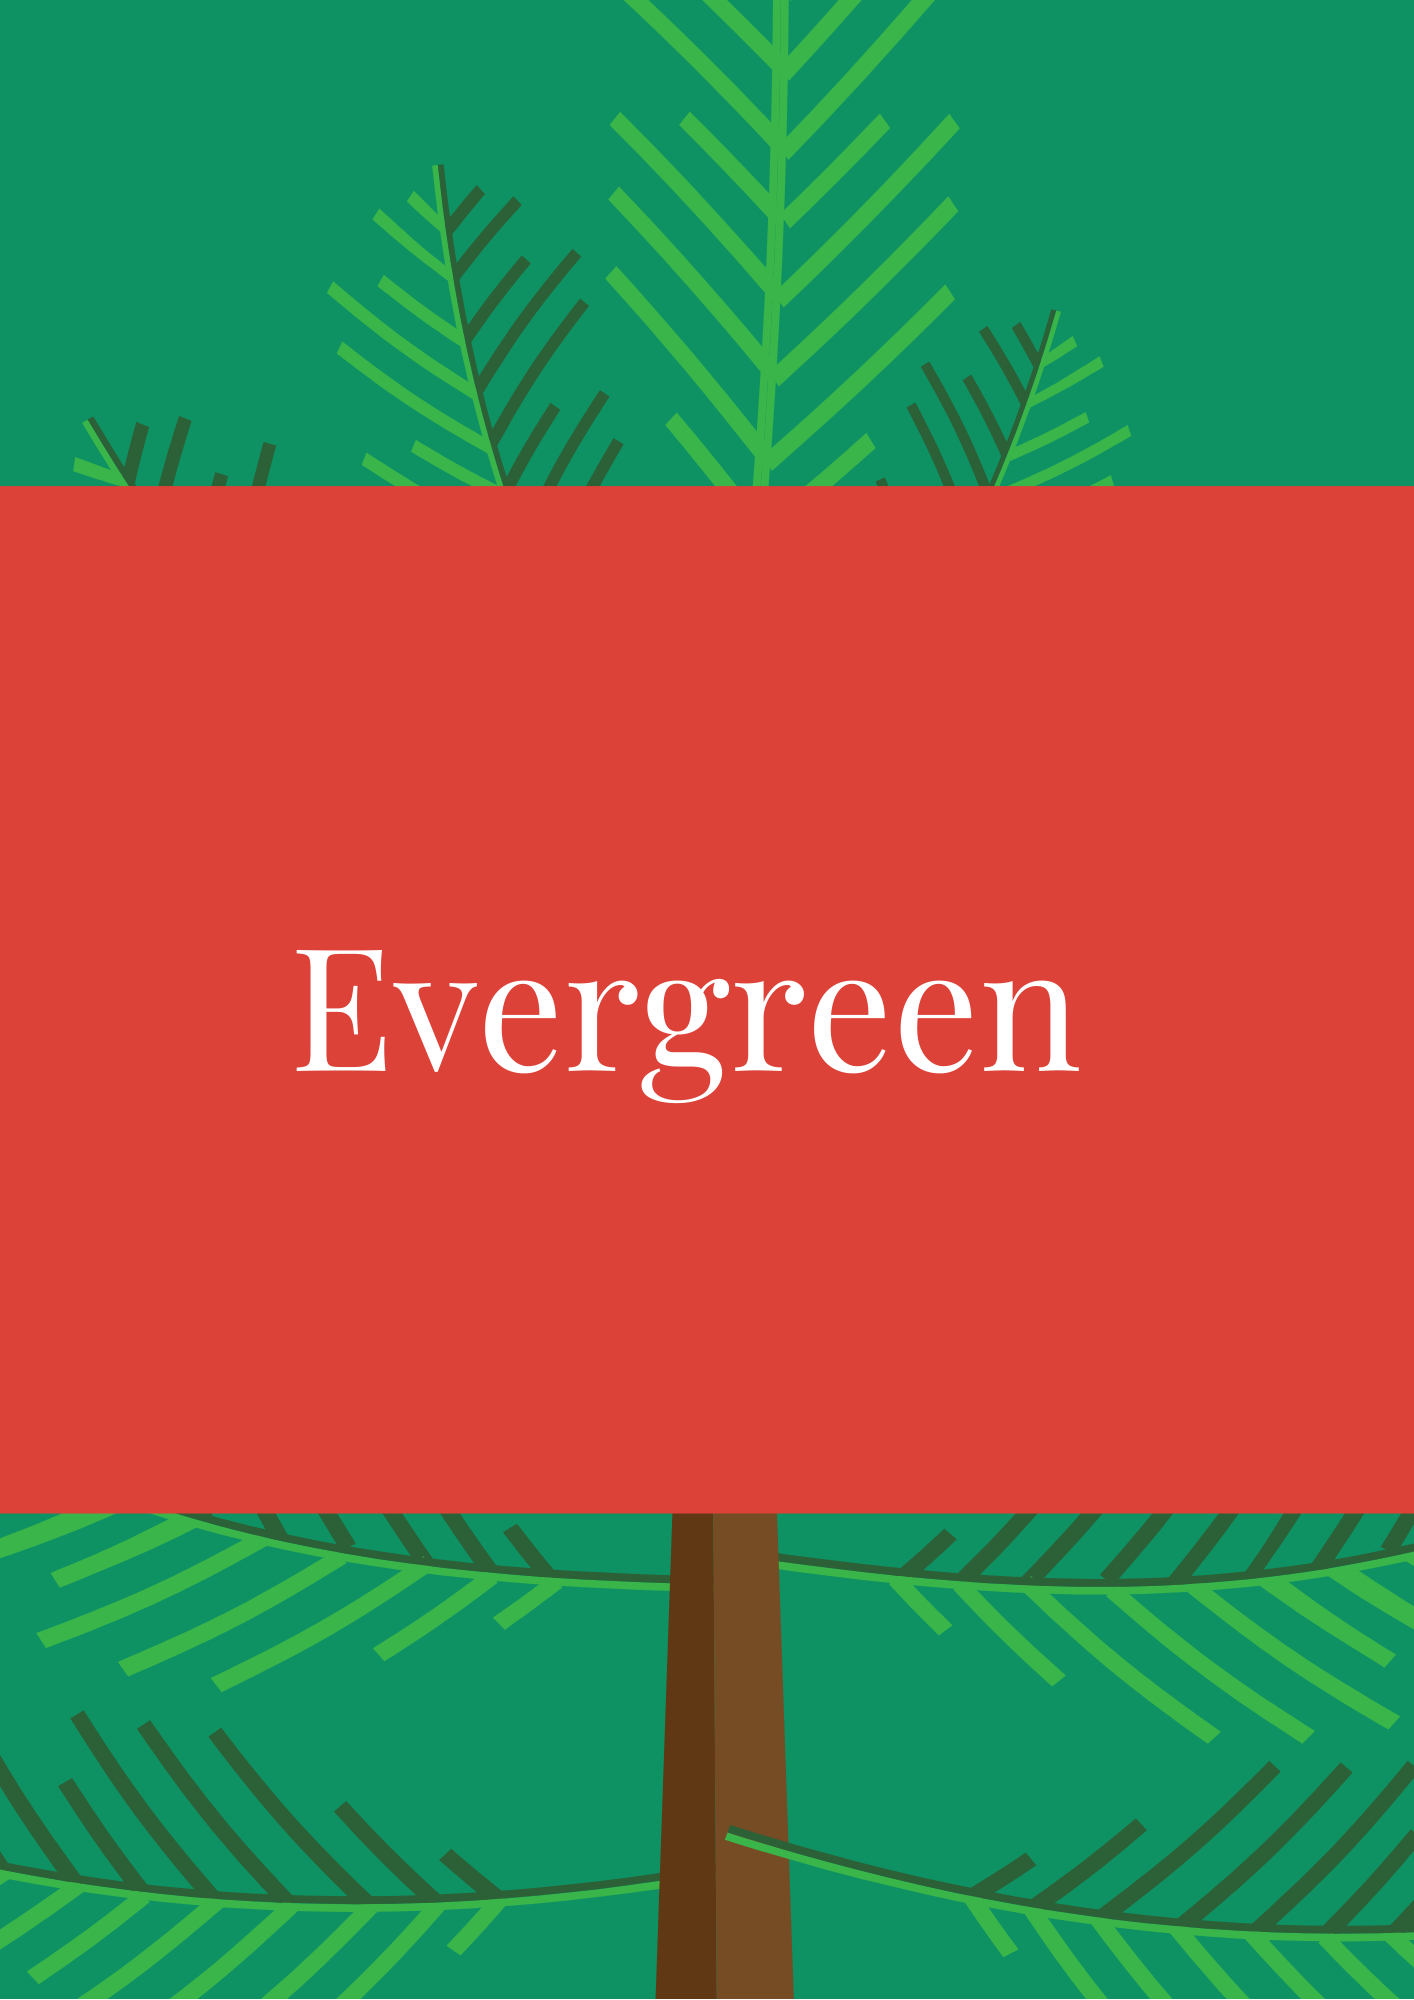 Evergreen Elf Names